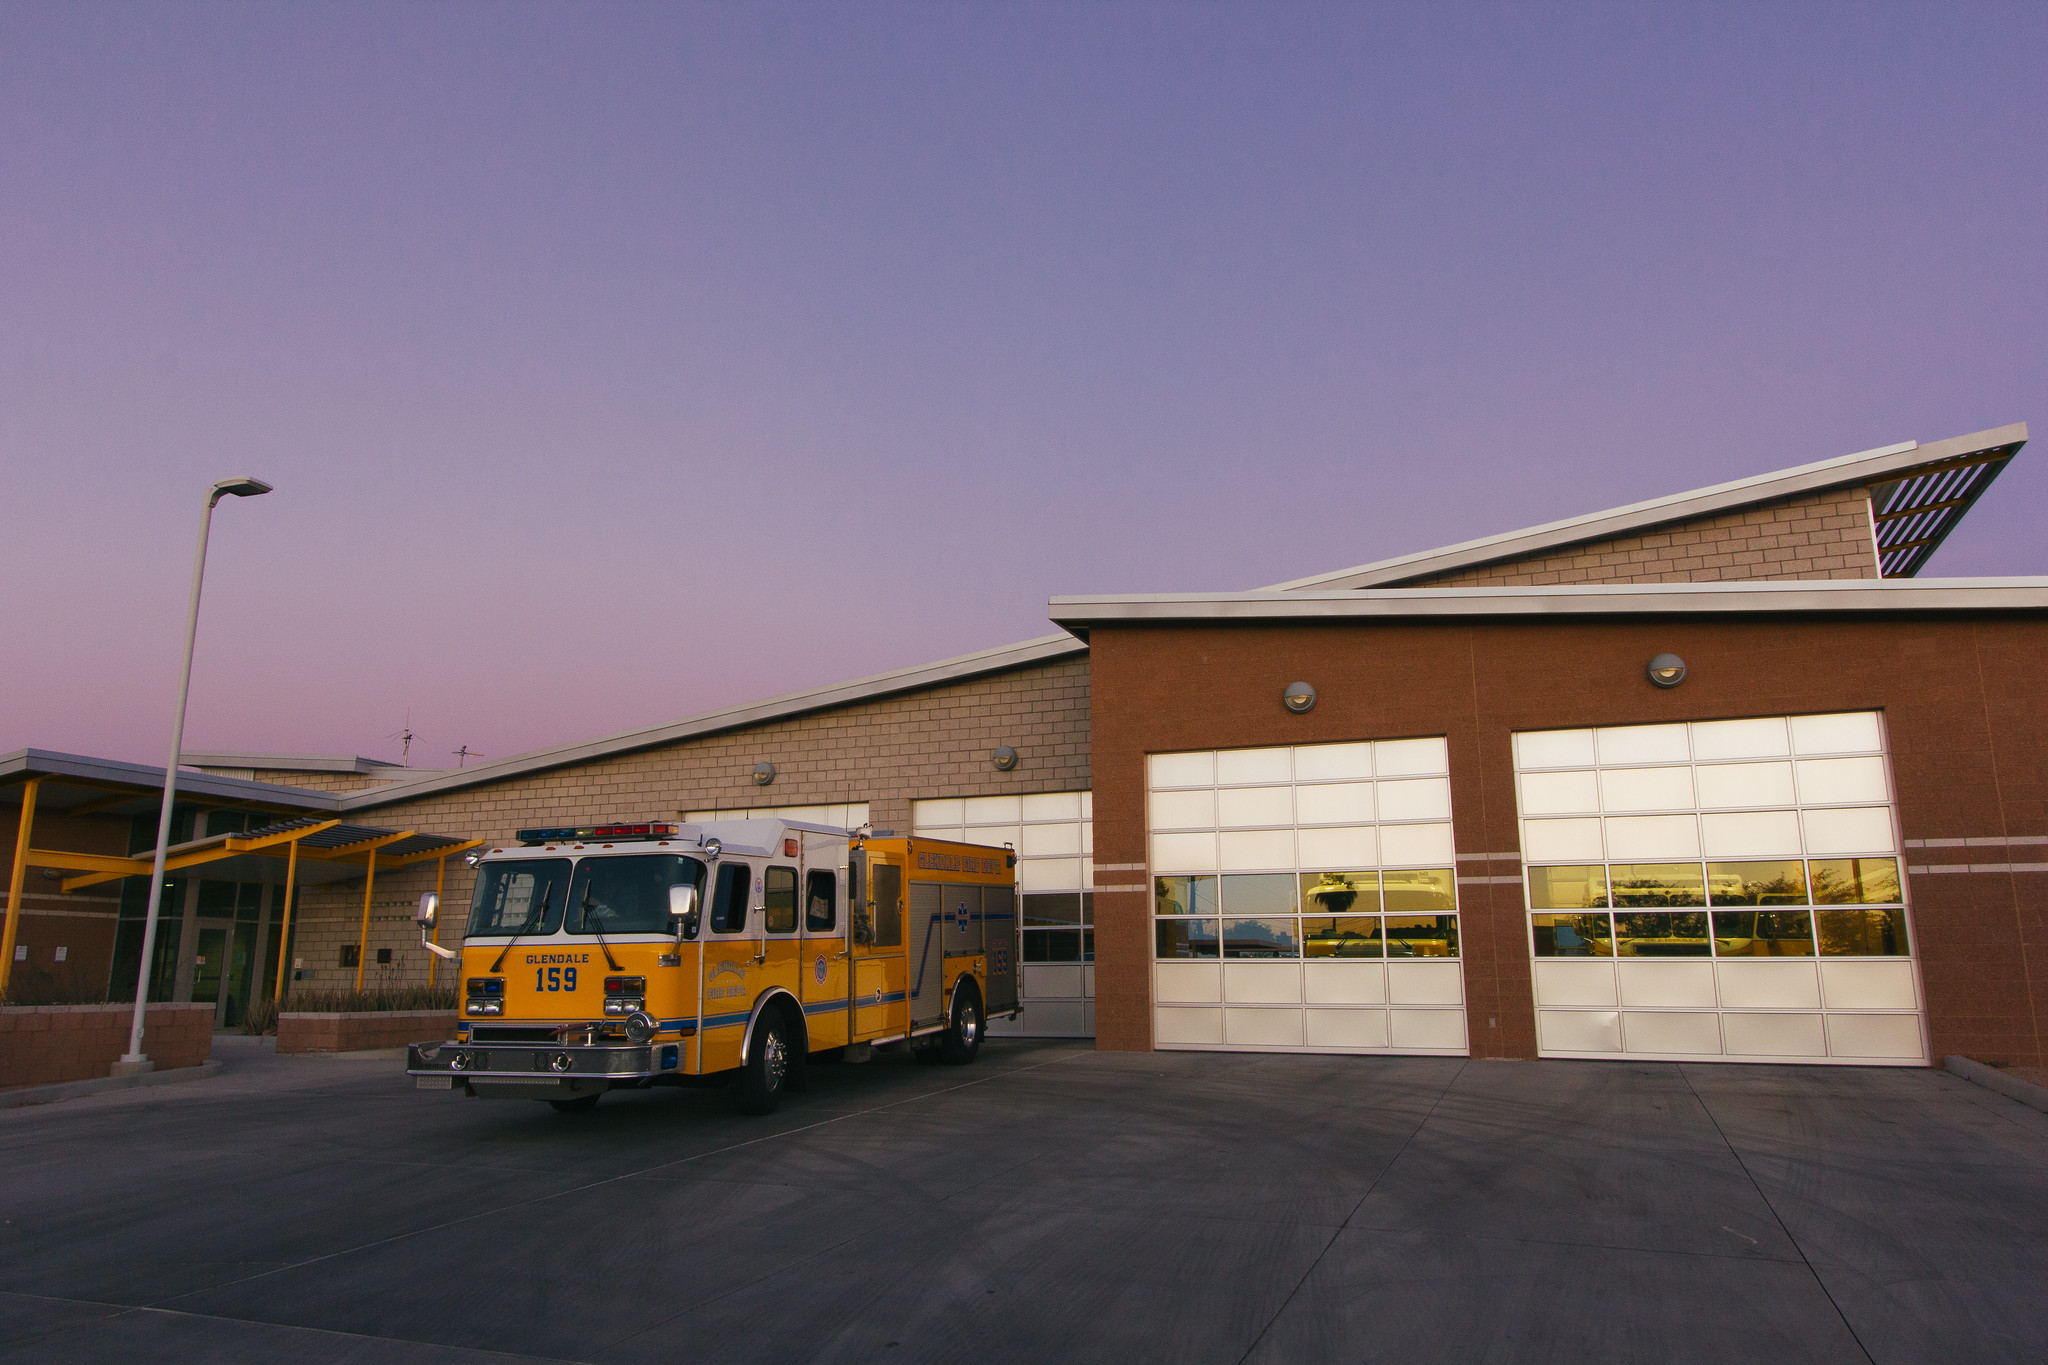 FireStation159-31